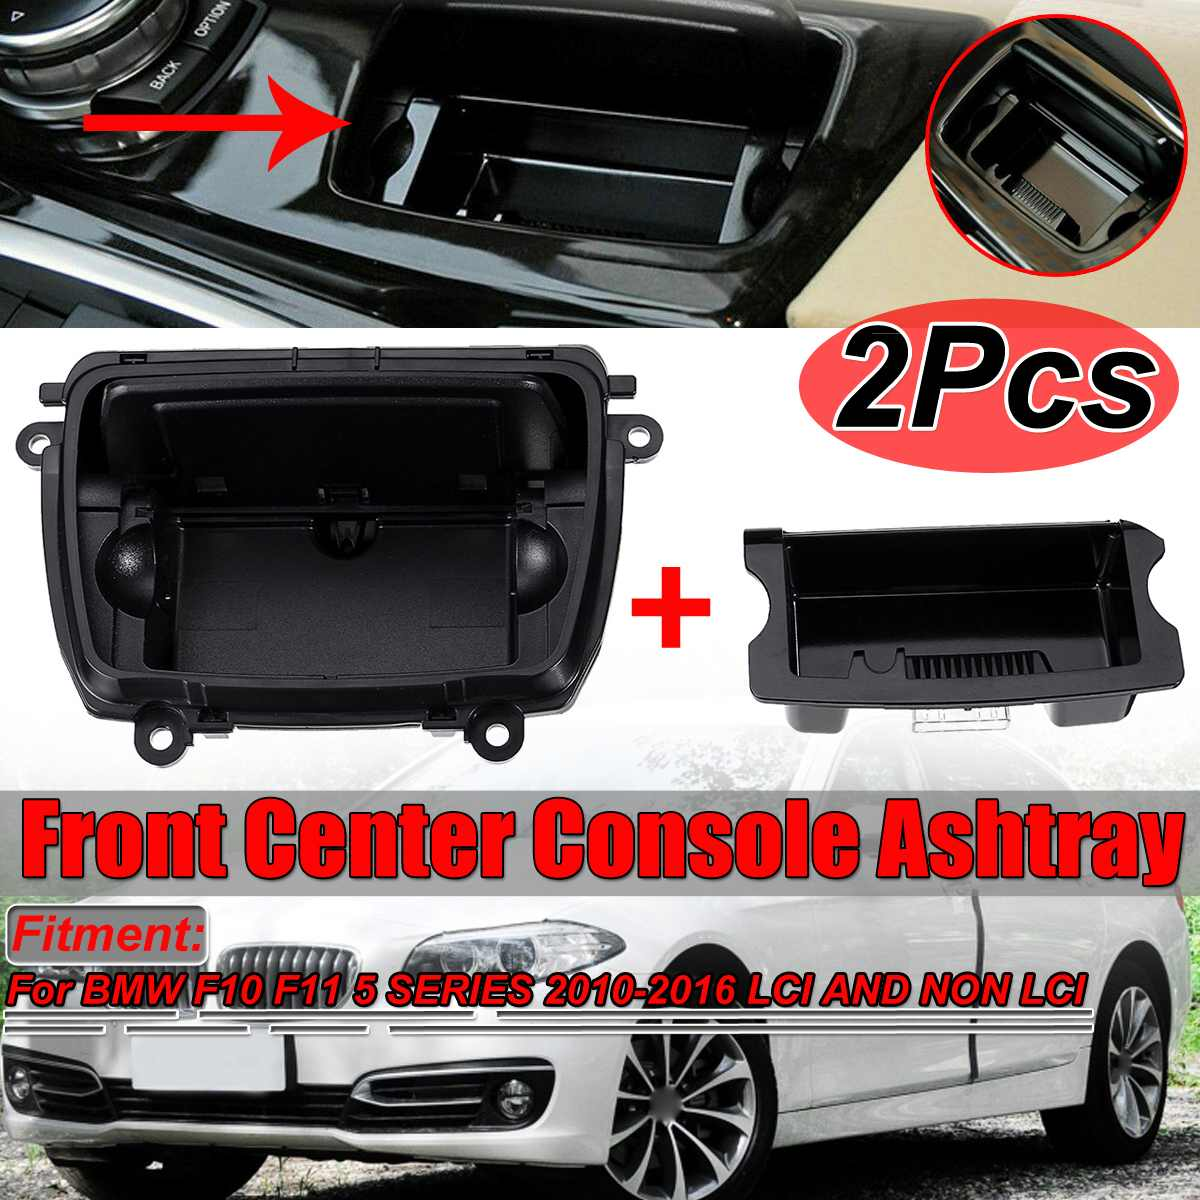 Car Front Center Console Ashtray Assembly Holder For Car For BMW 5 Series F10 F11 F18 520 523 525 528 530 51169206347 9206347